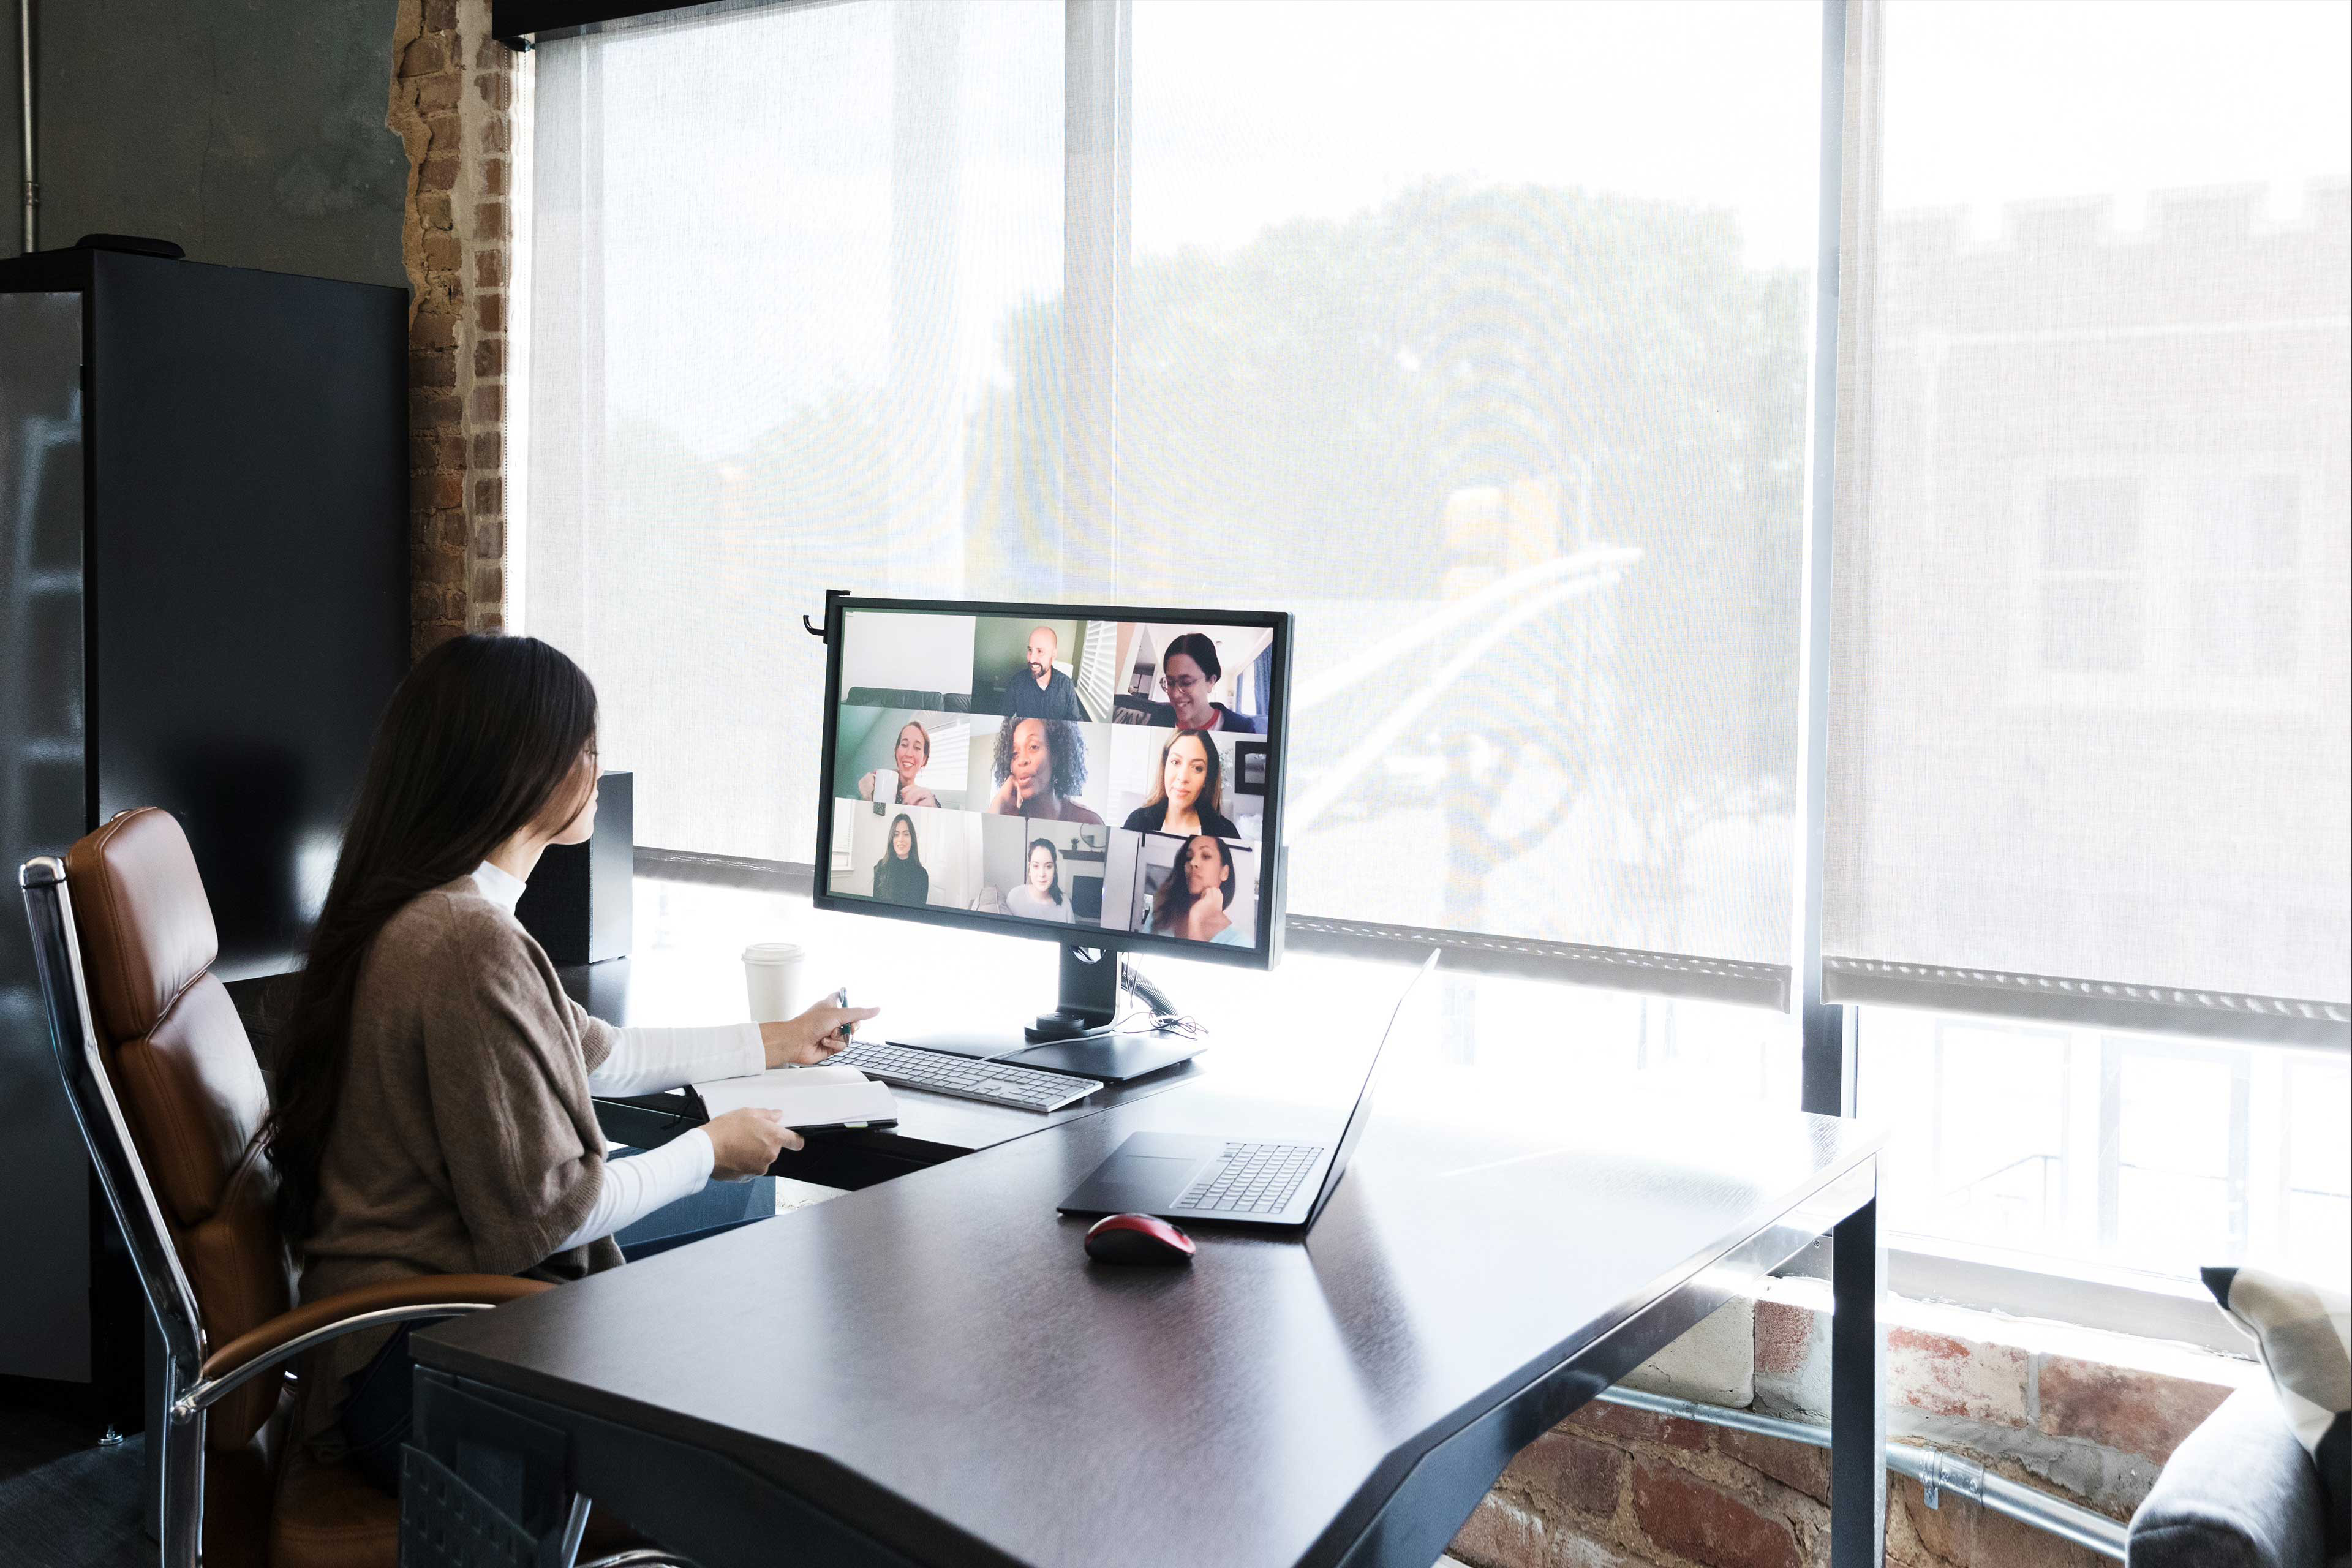 Woman meets with colleagues virtually